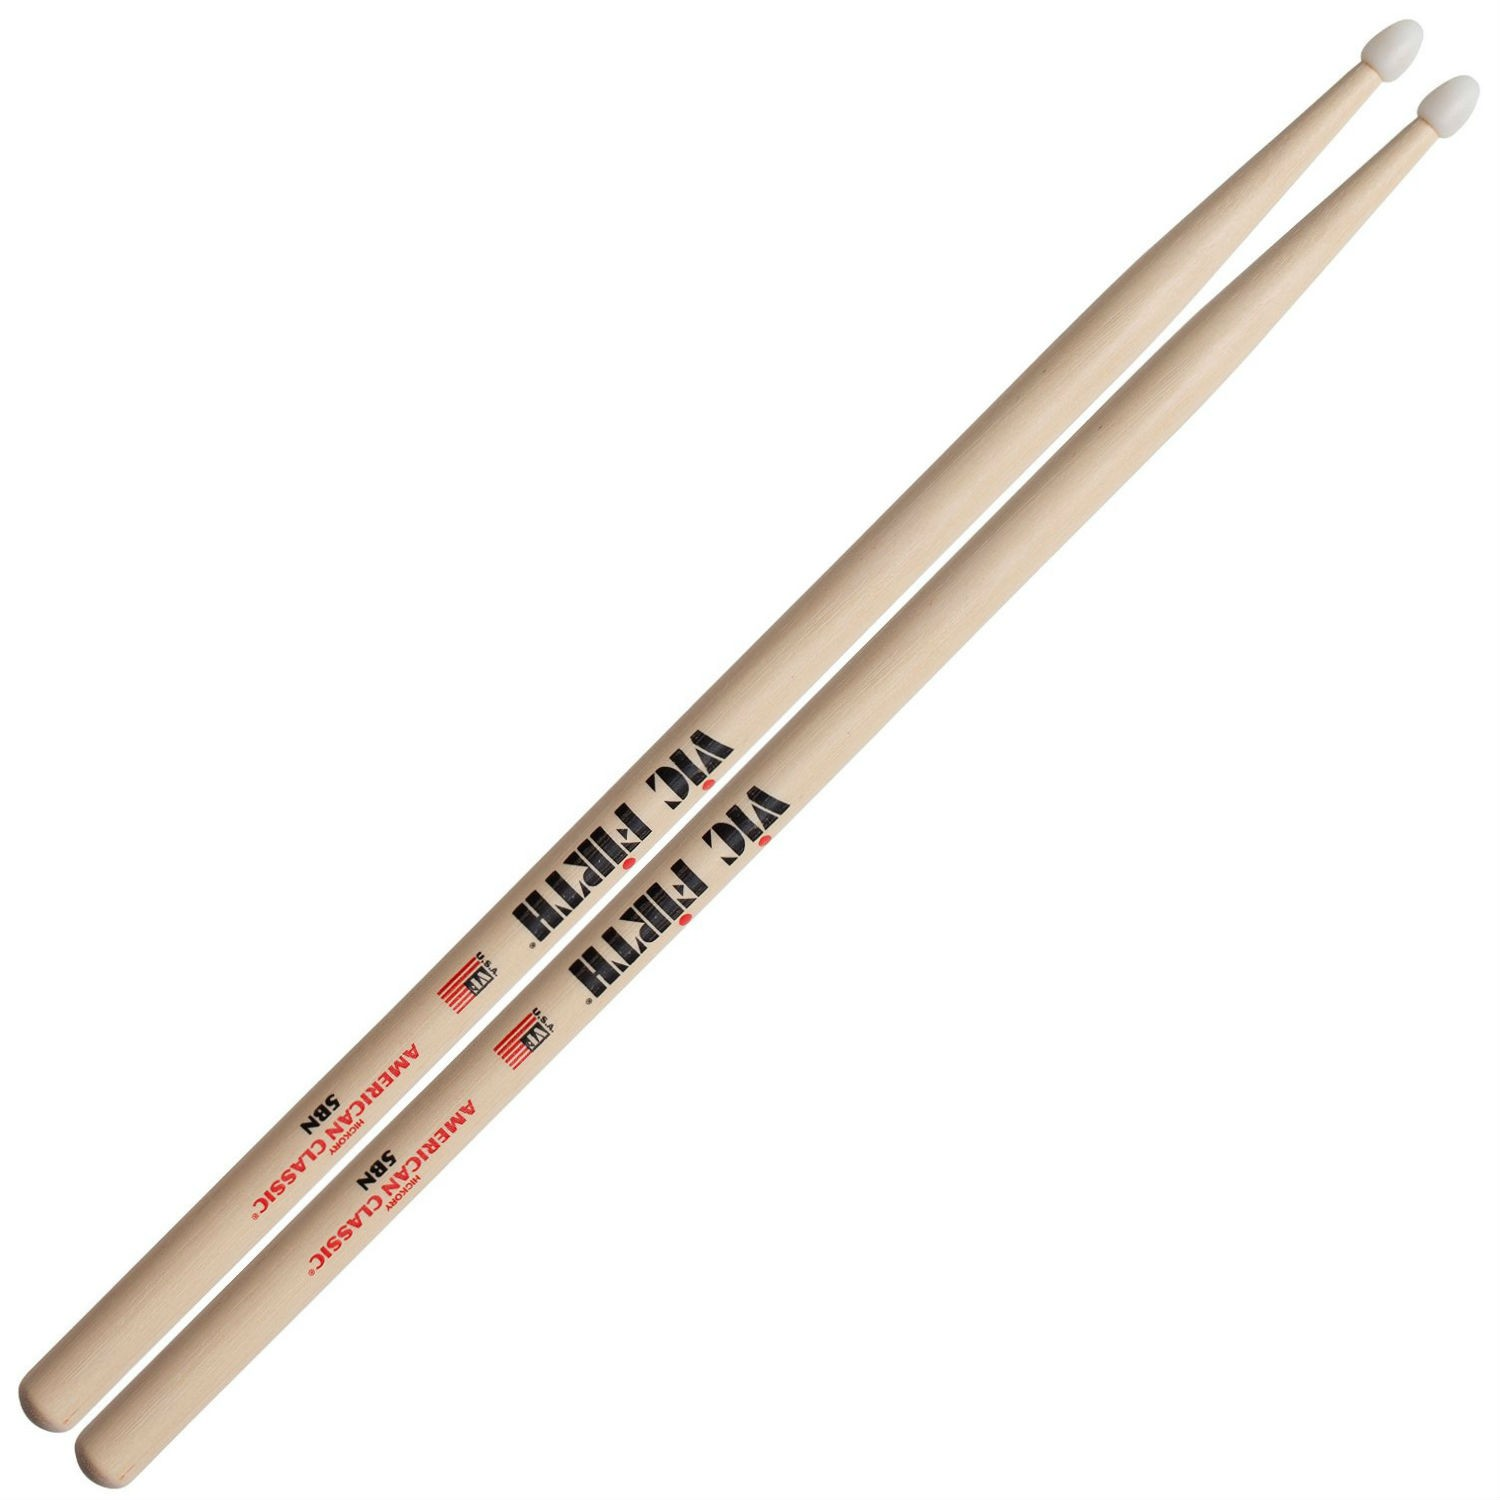 Vic Firth American Classic 5BN Nylon Tip Drum Sticks